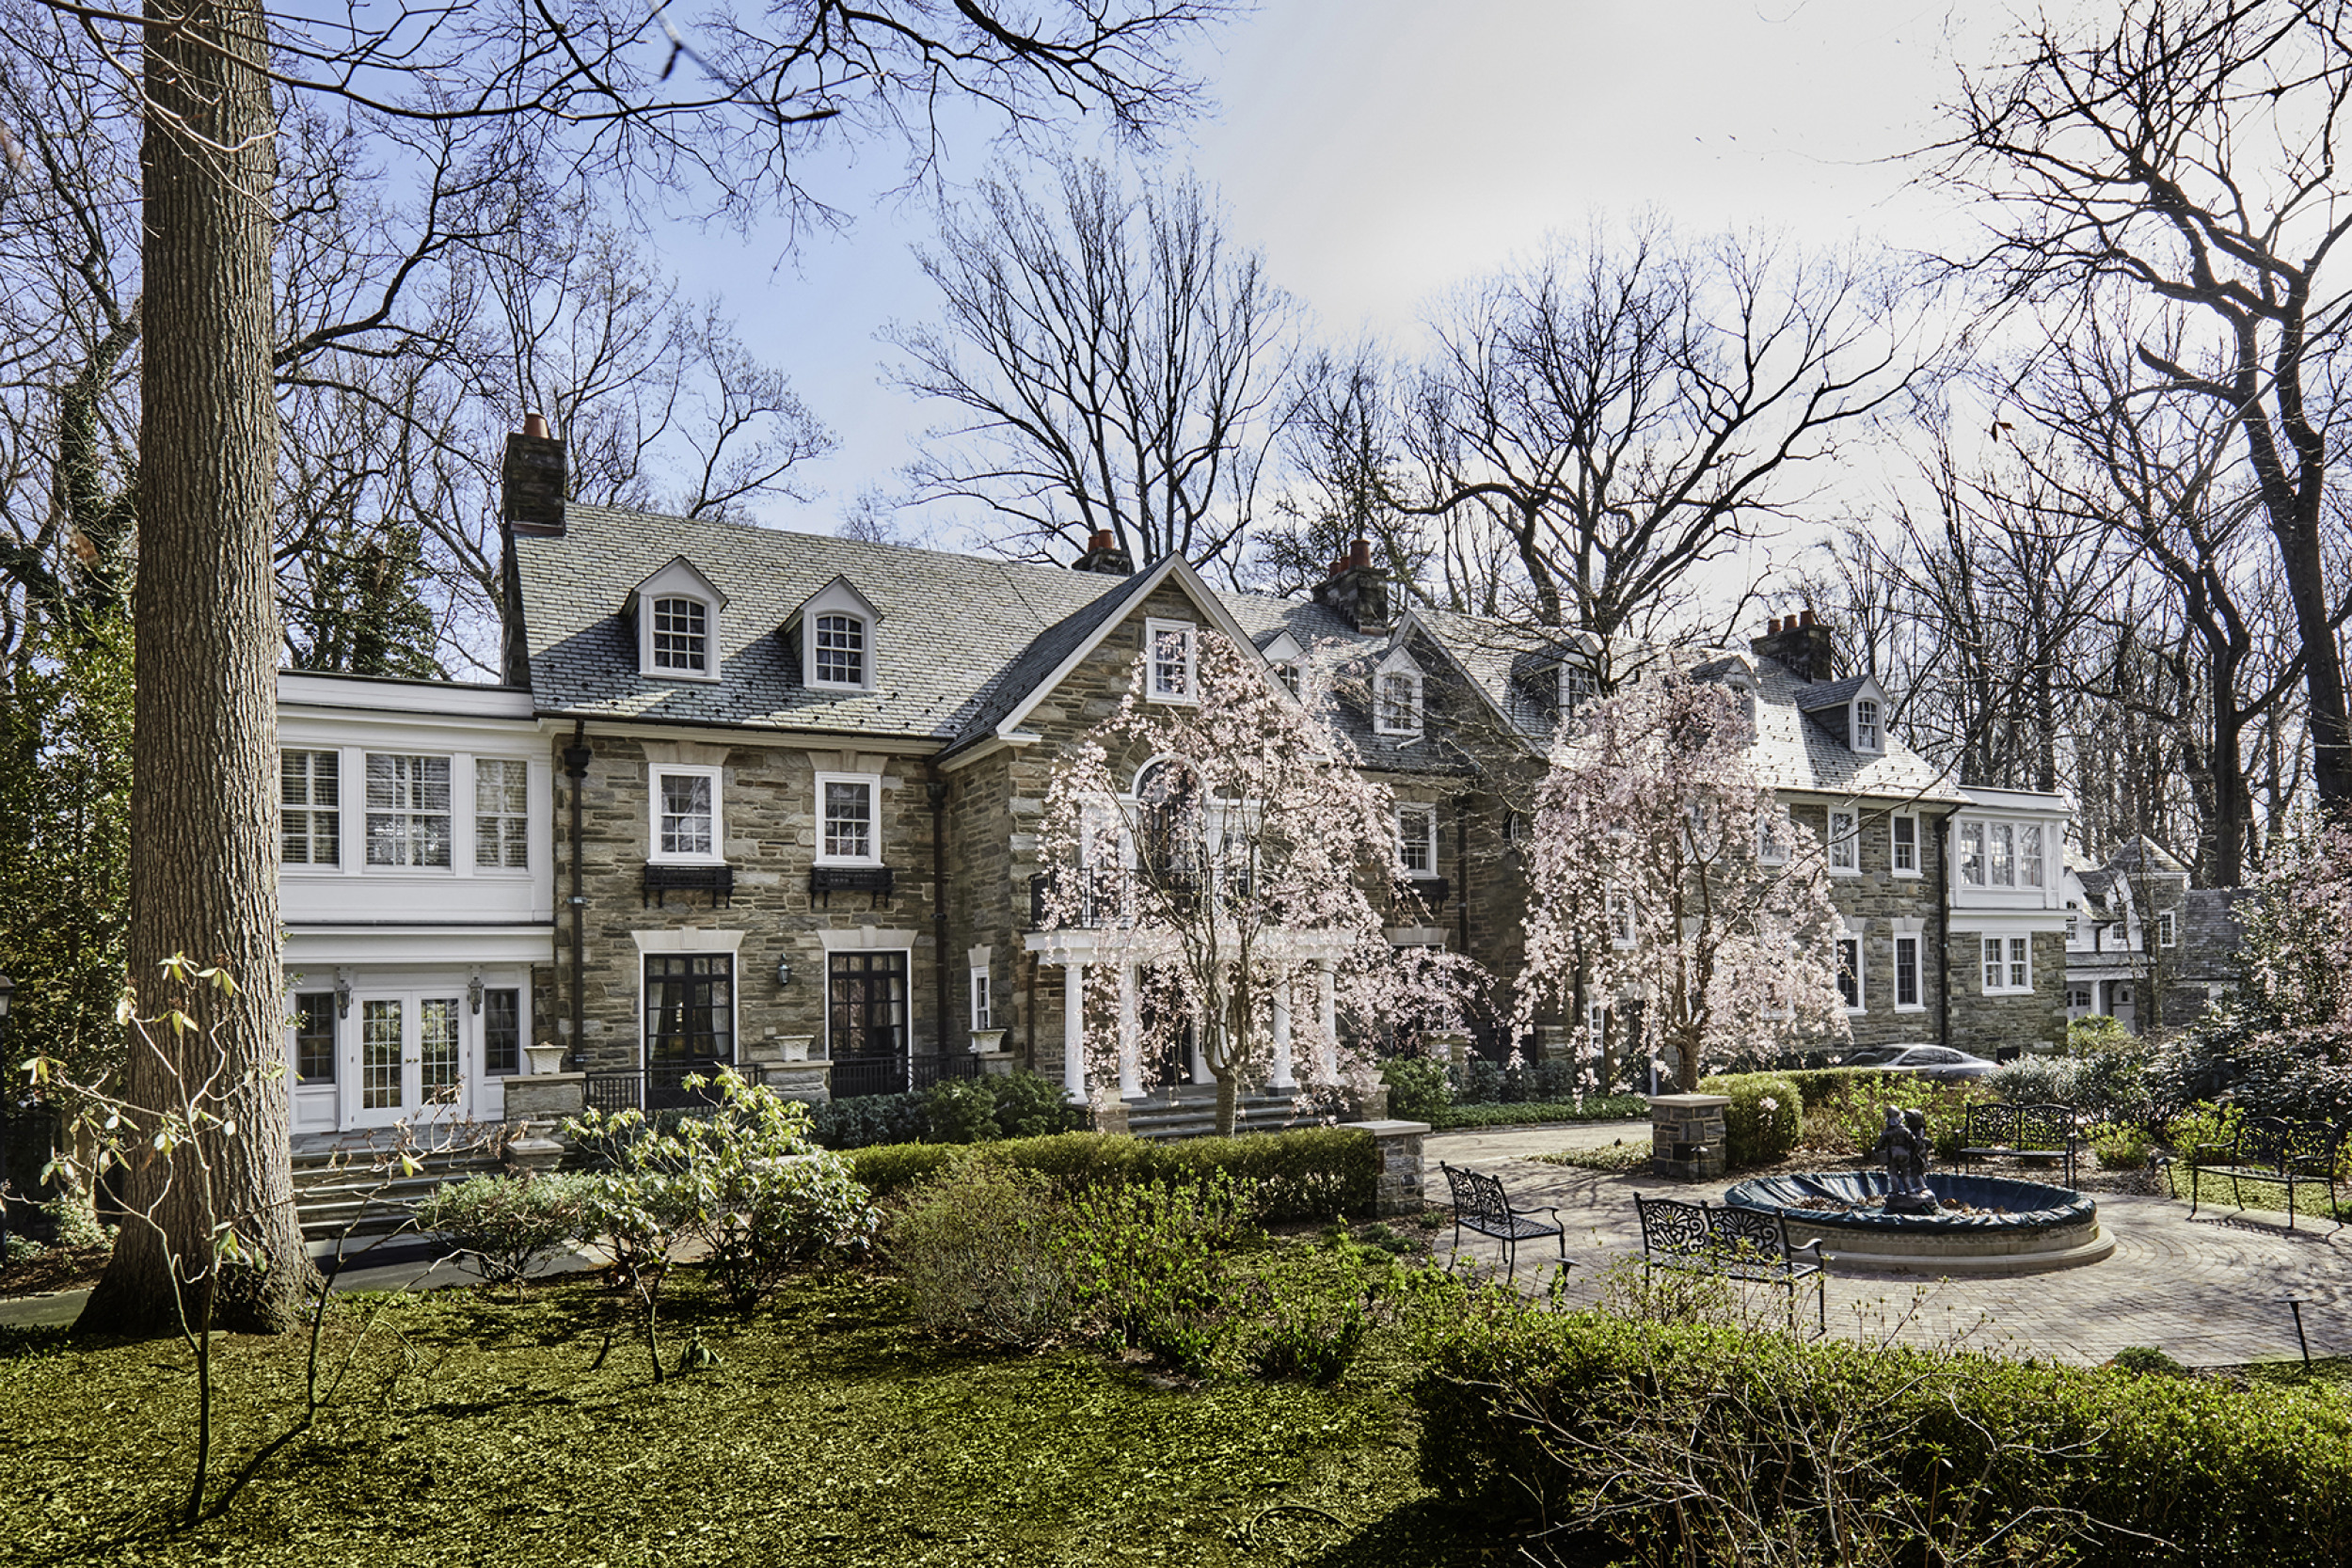 Single Family Home for Sale at Stately Stone Mansion 489 UPPER GULPH RD Radnor, 19087 United States